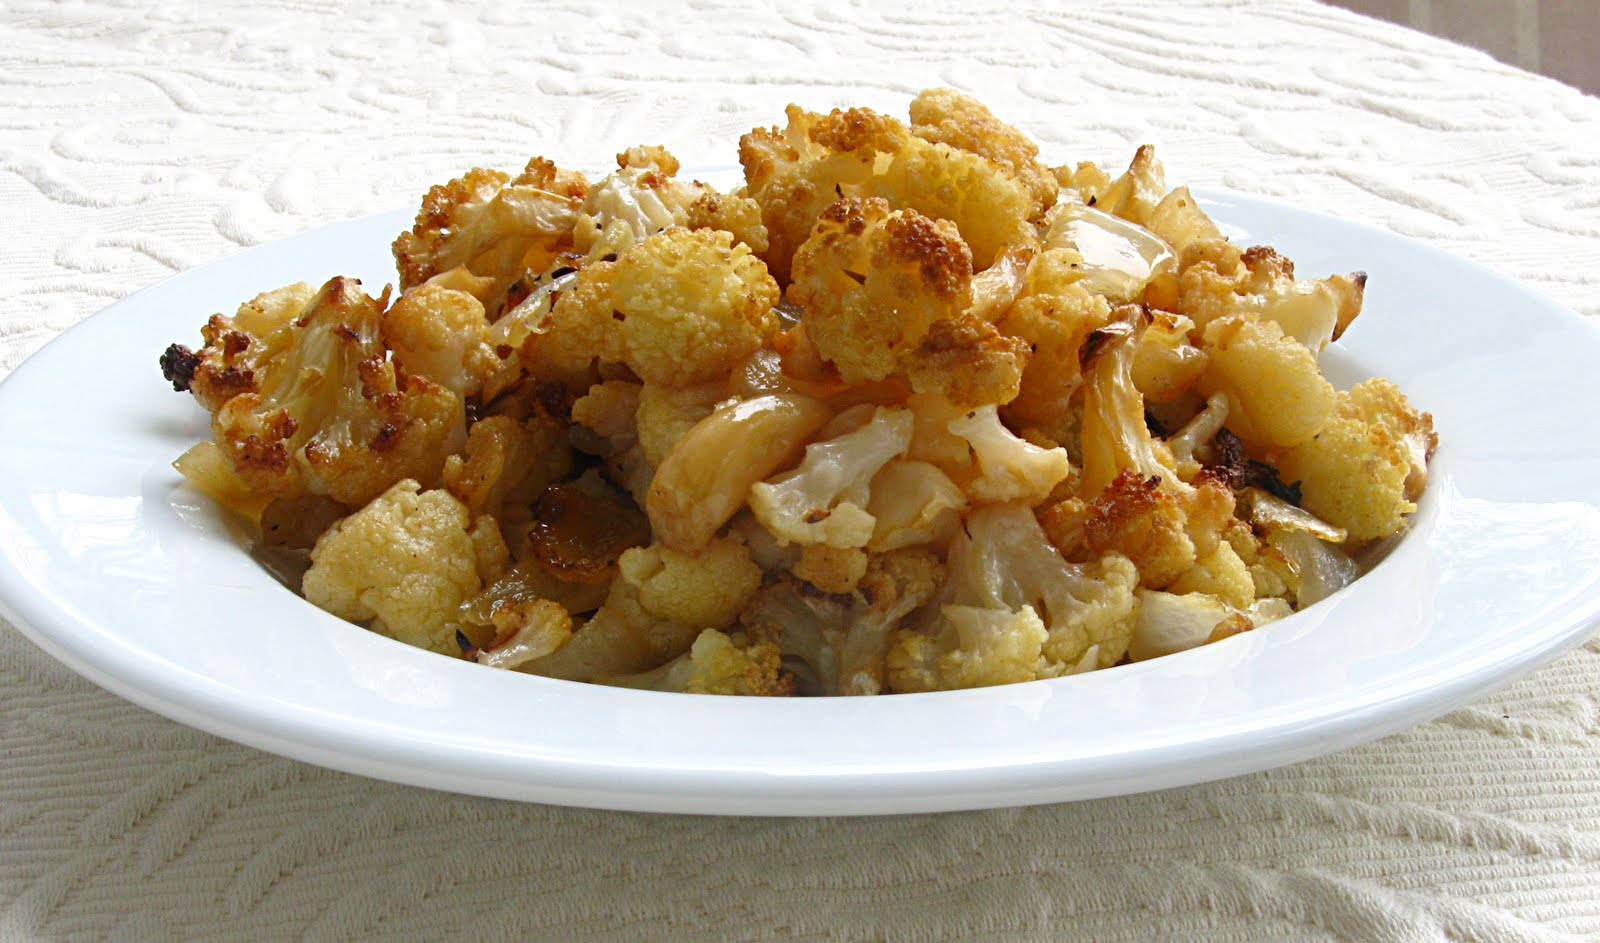 oven roasted cauliflower onions and garlic 1 head cauliflower cut